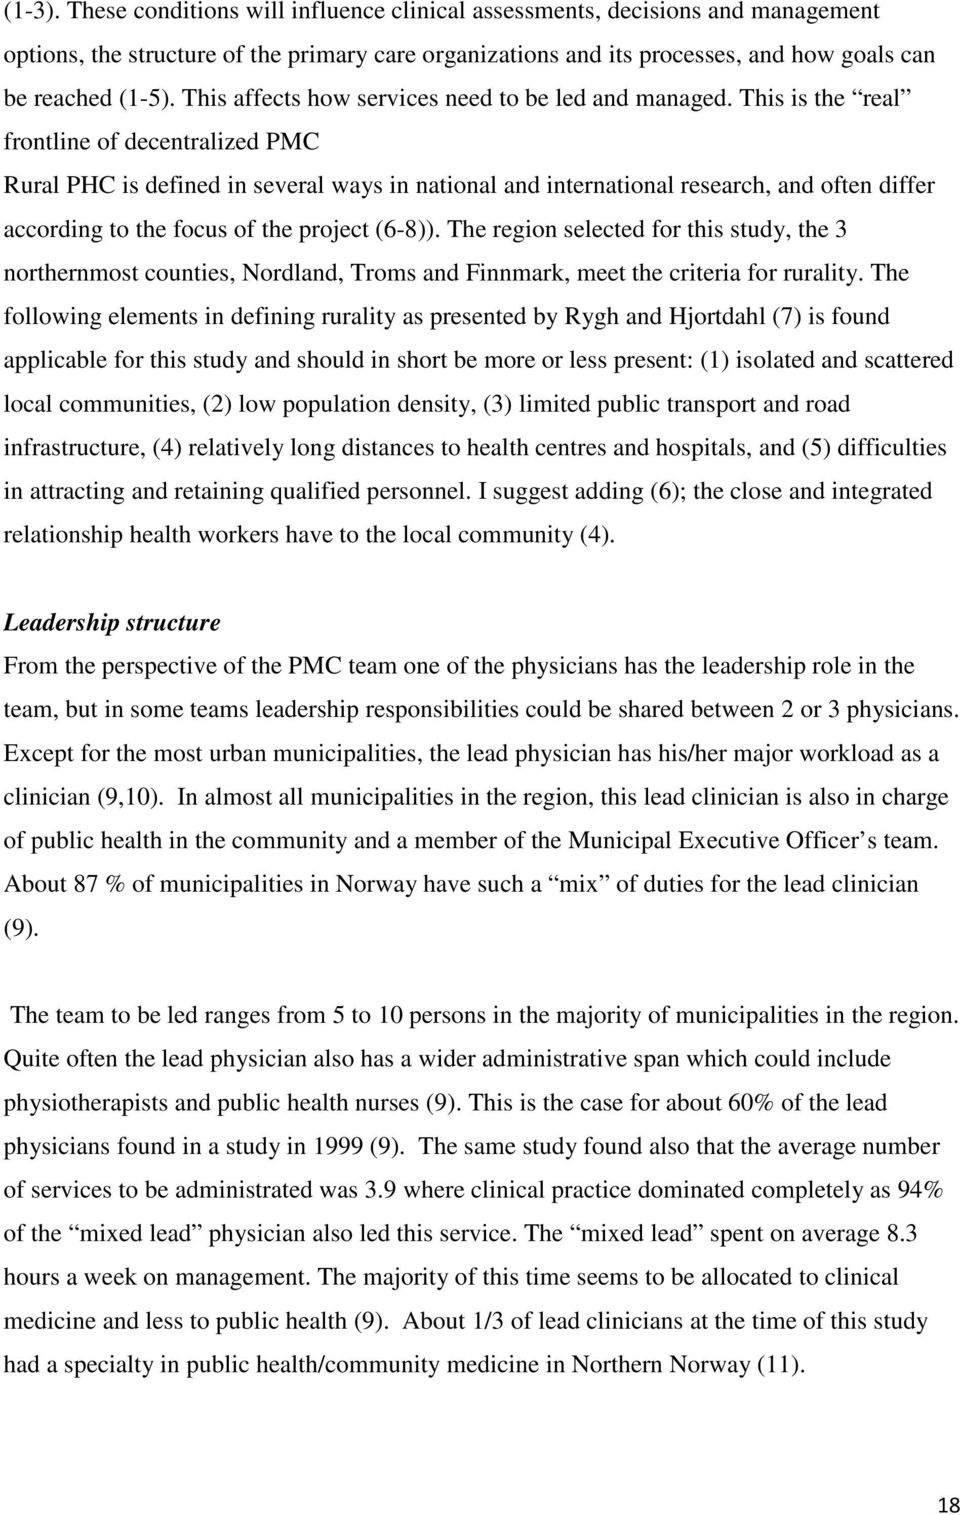 This is the real frontline of decentralized PMC Rural PHC is defined in several ways in national and international research, and often differ according to the focus of the project (6-8)).